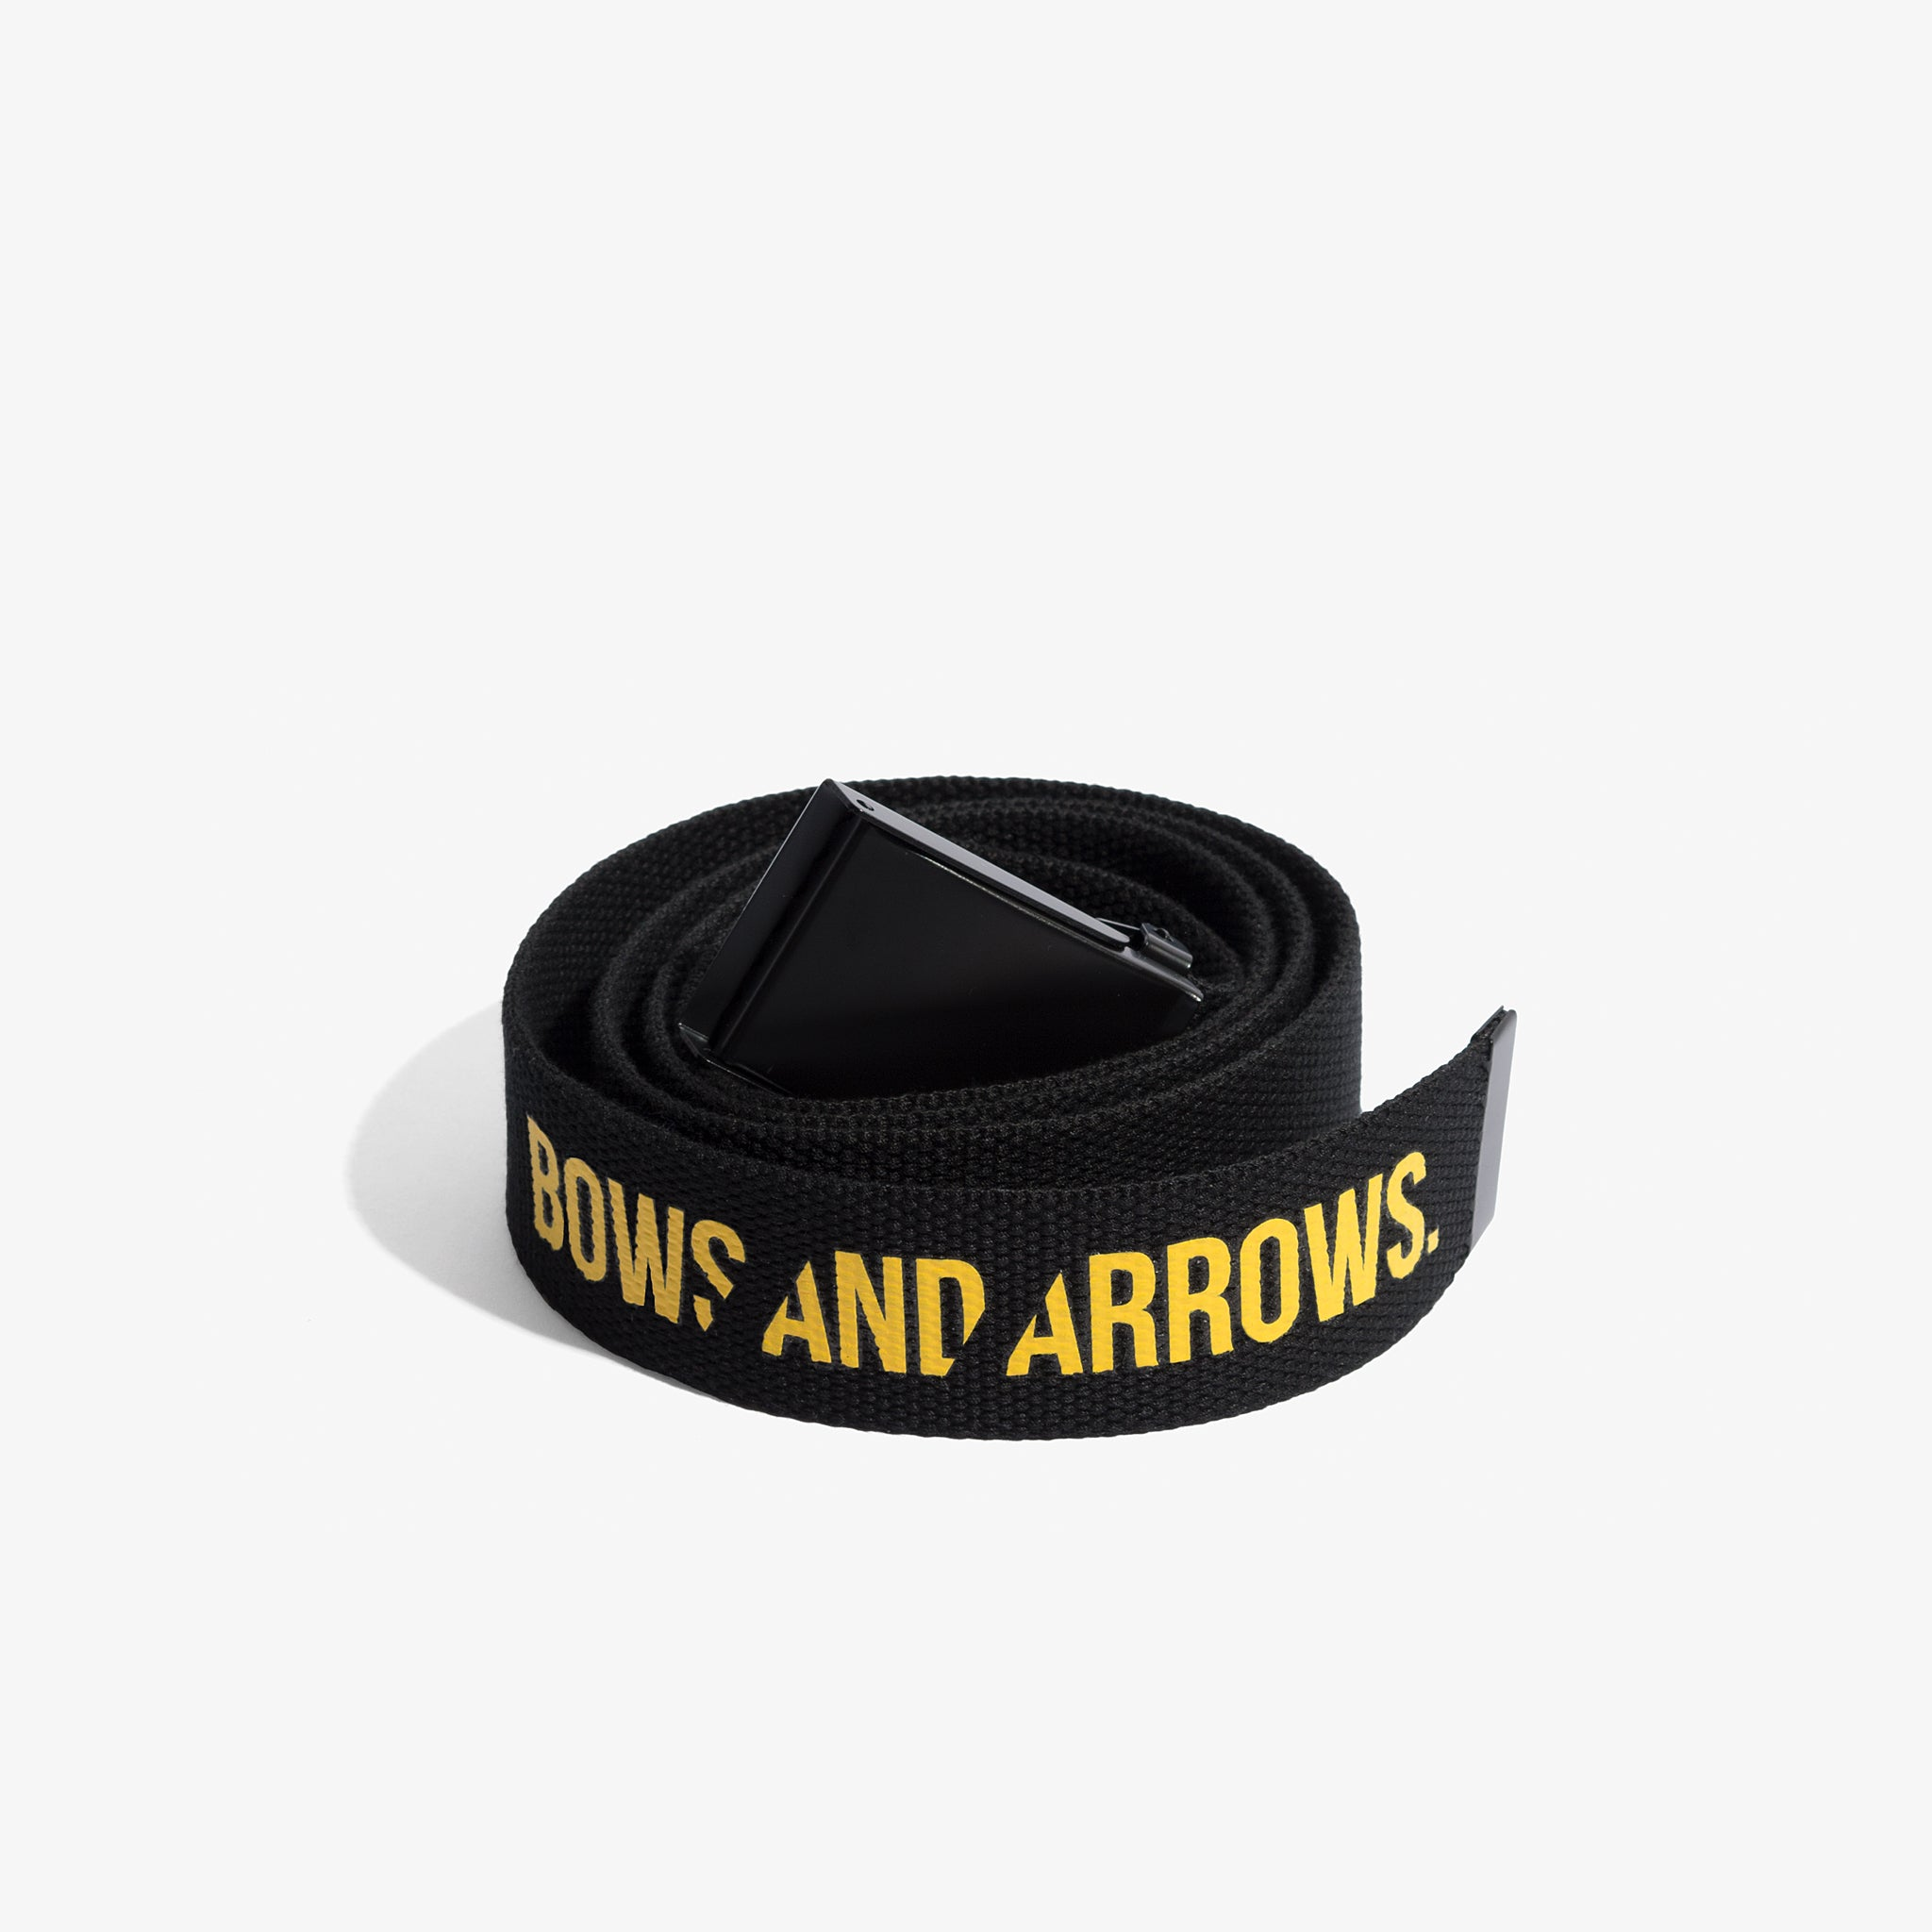 Bows and Arrows Logo Belt (Black)